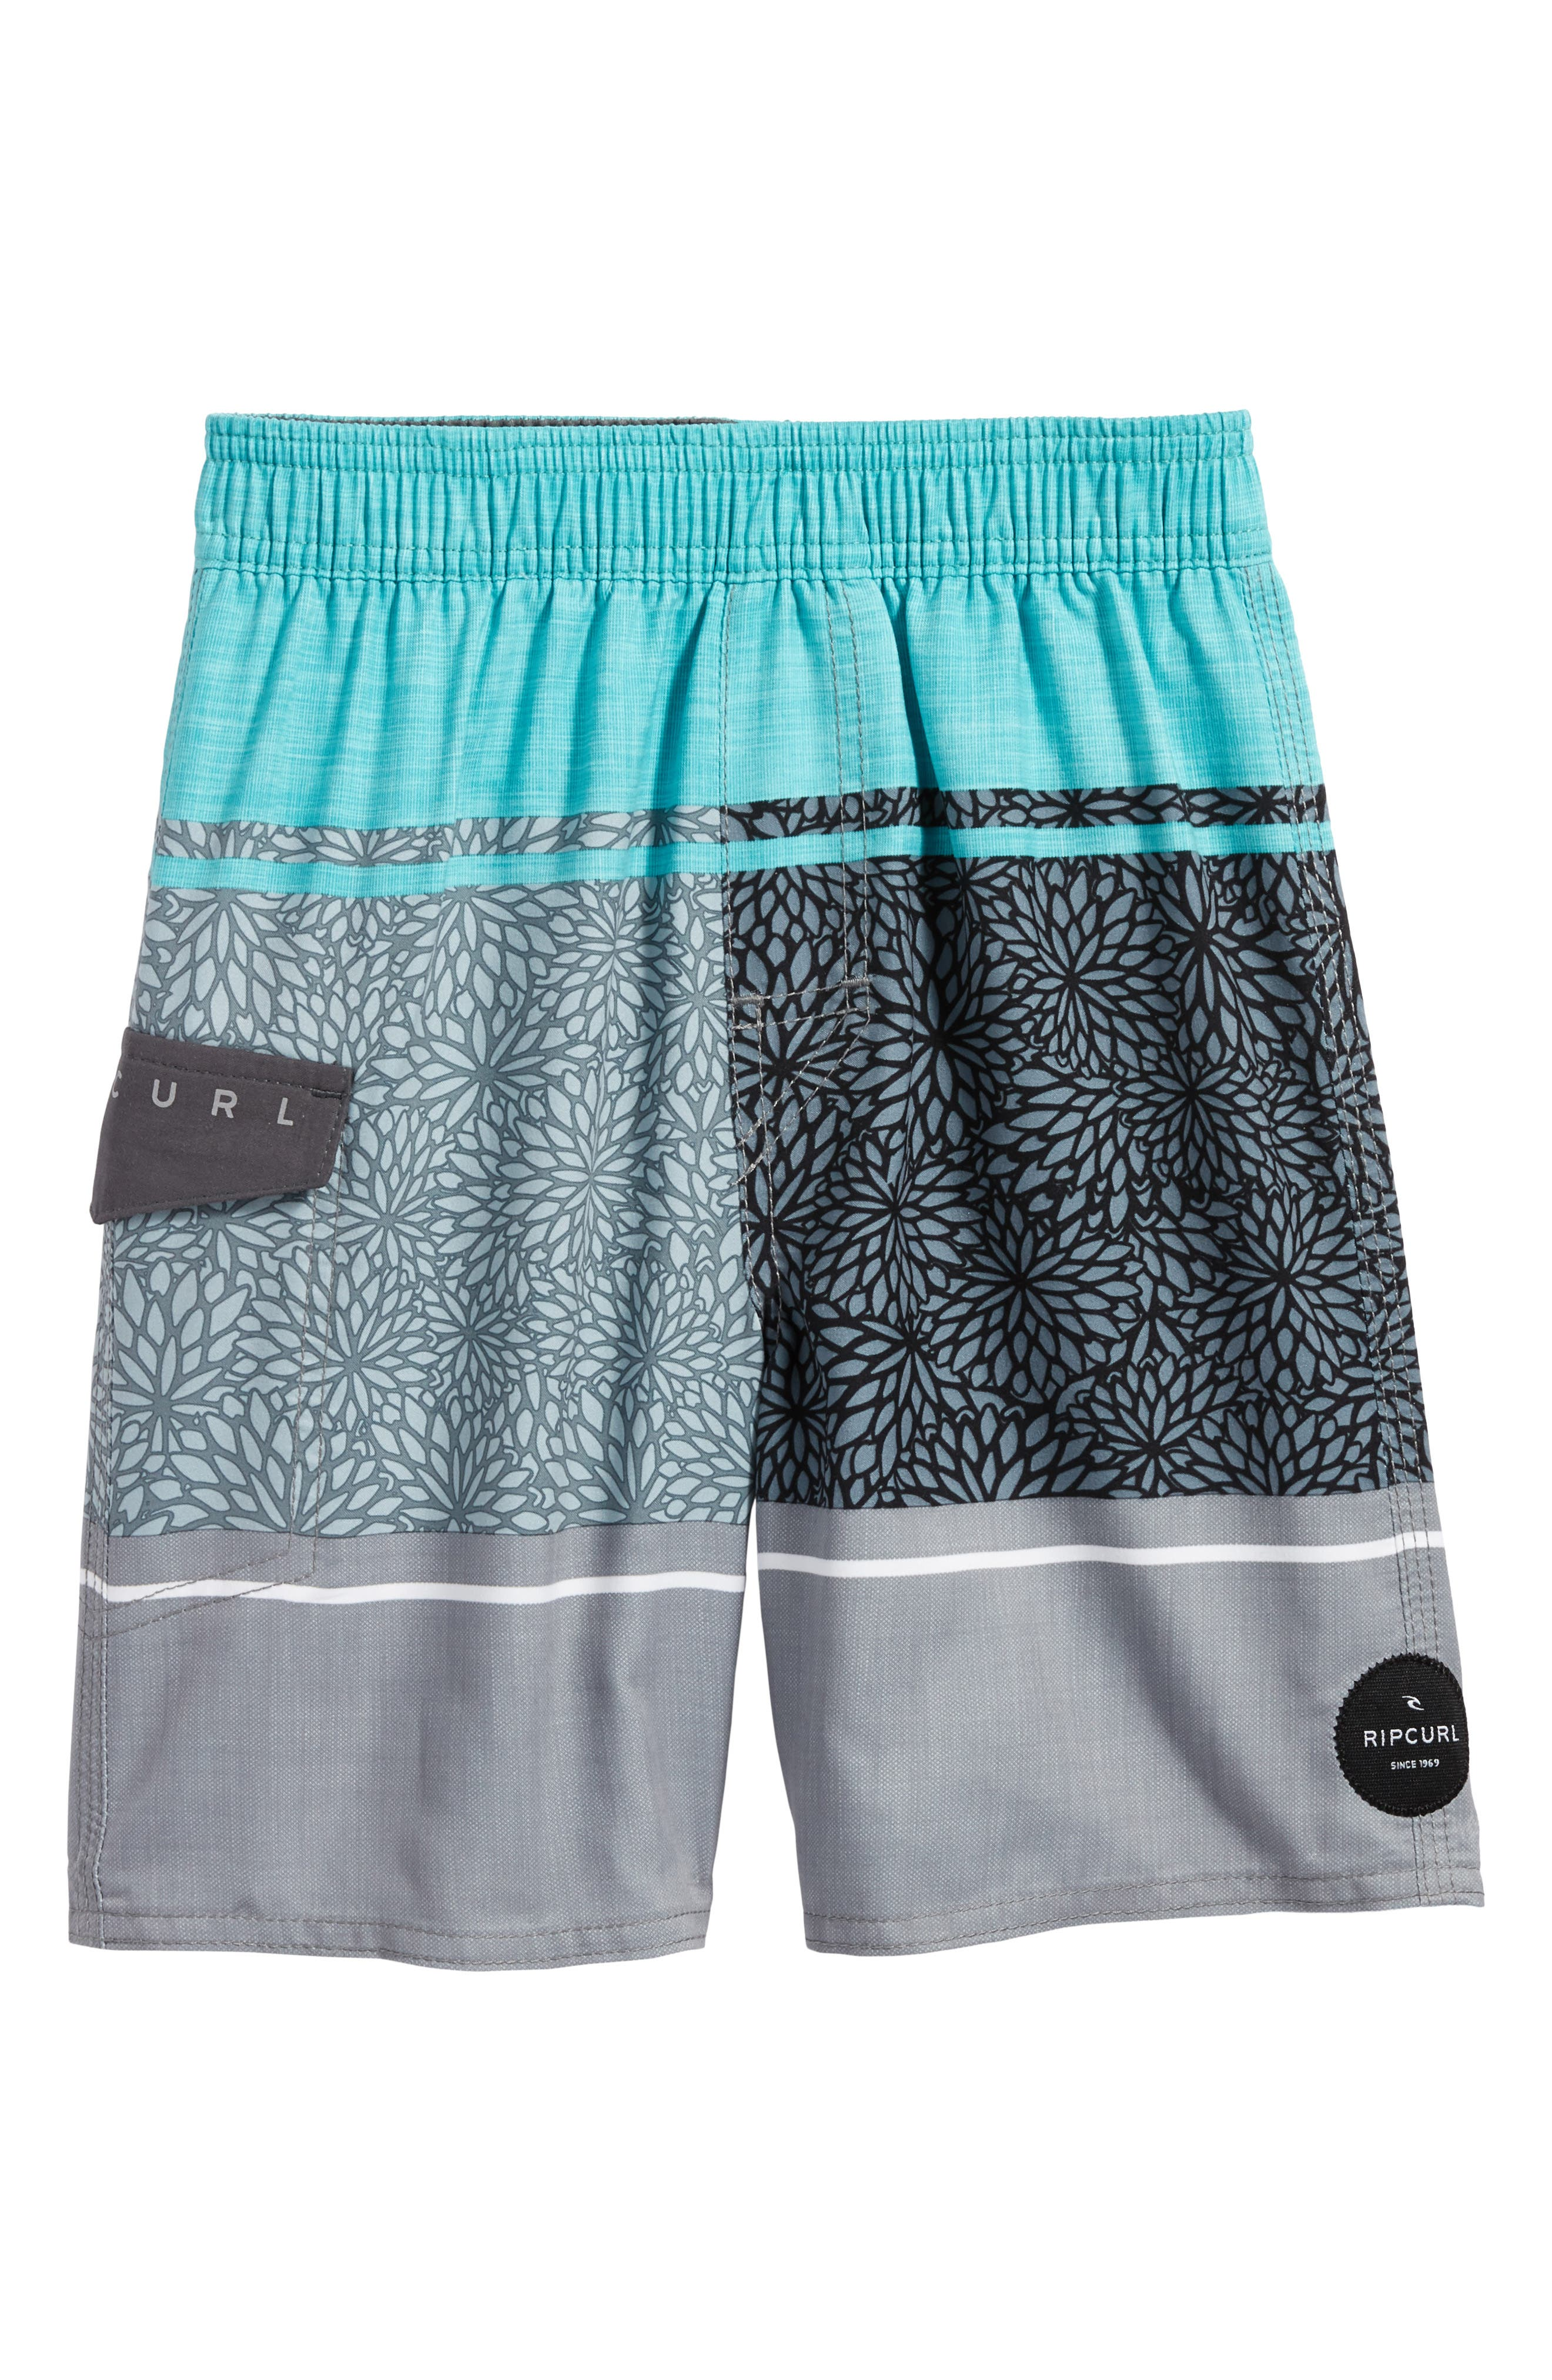 First Point Board Shorts,                         Main,                         color, Black